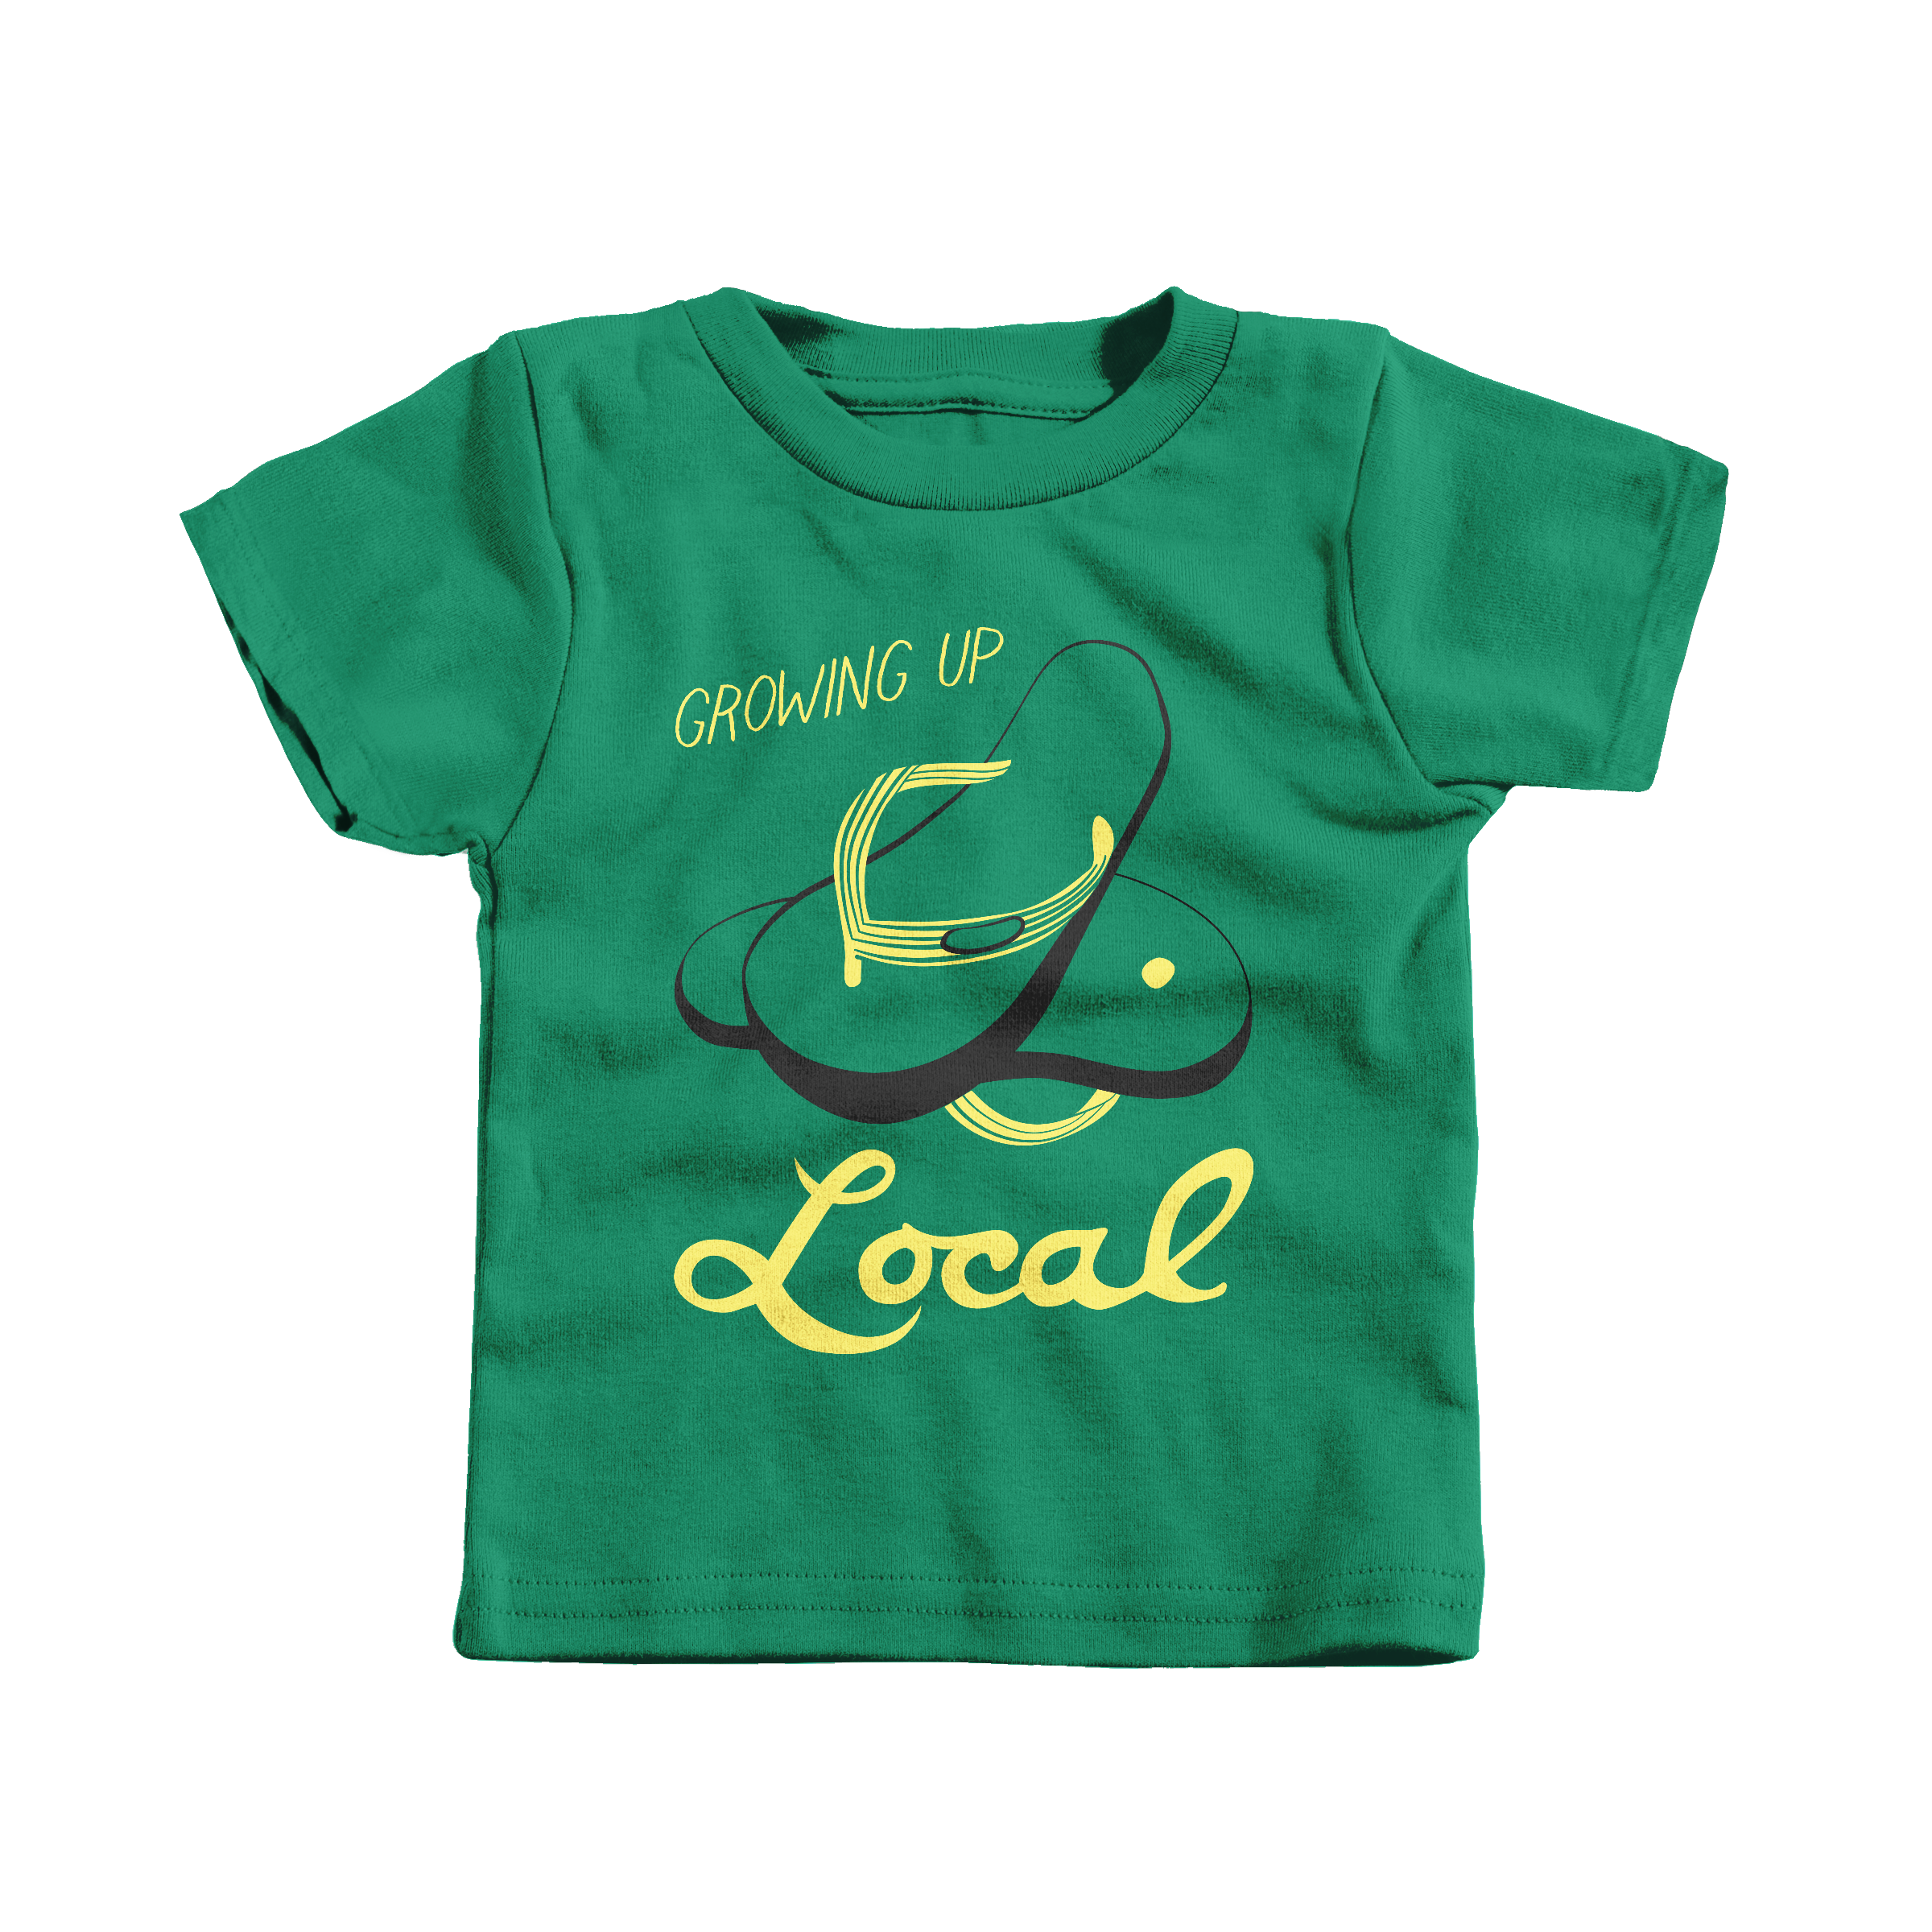 Growing Up Local Kelly (T-Shirt)